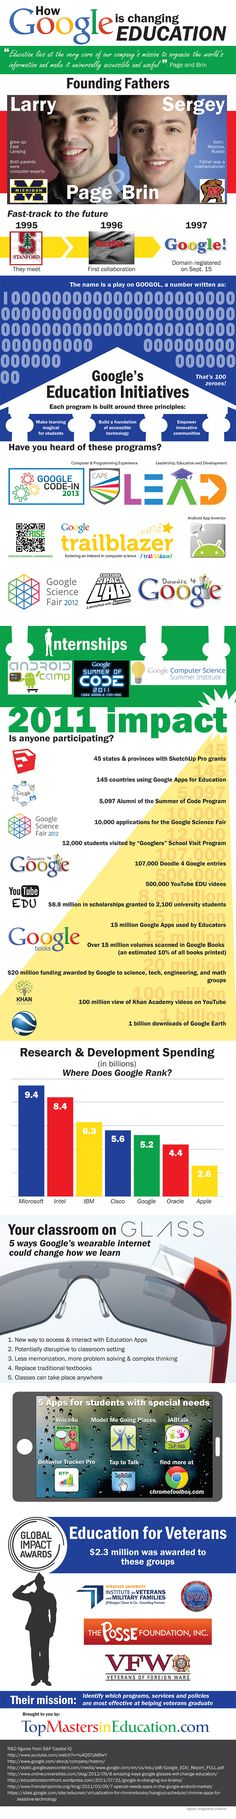 Google changing education